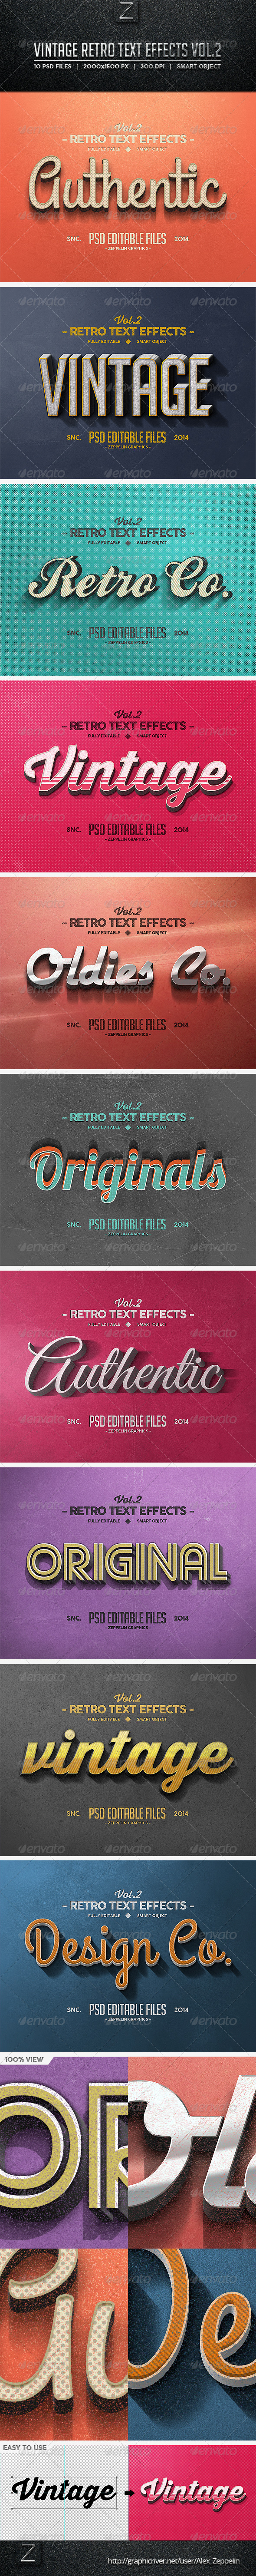 GraphicRiver Vintage Text Effects Vol.2 8540775